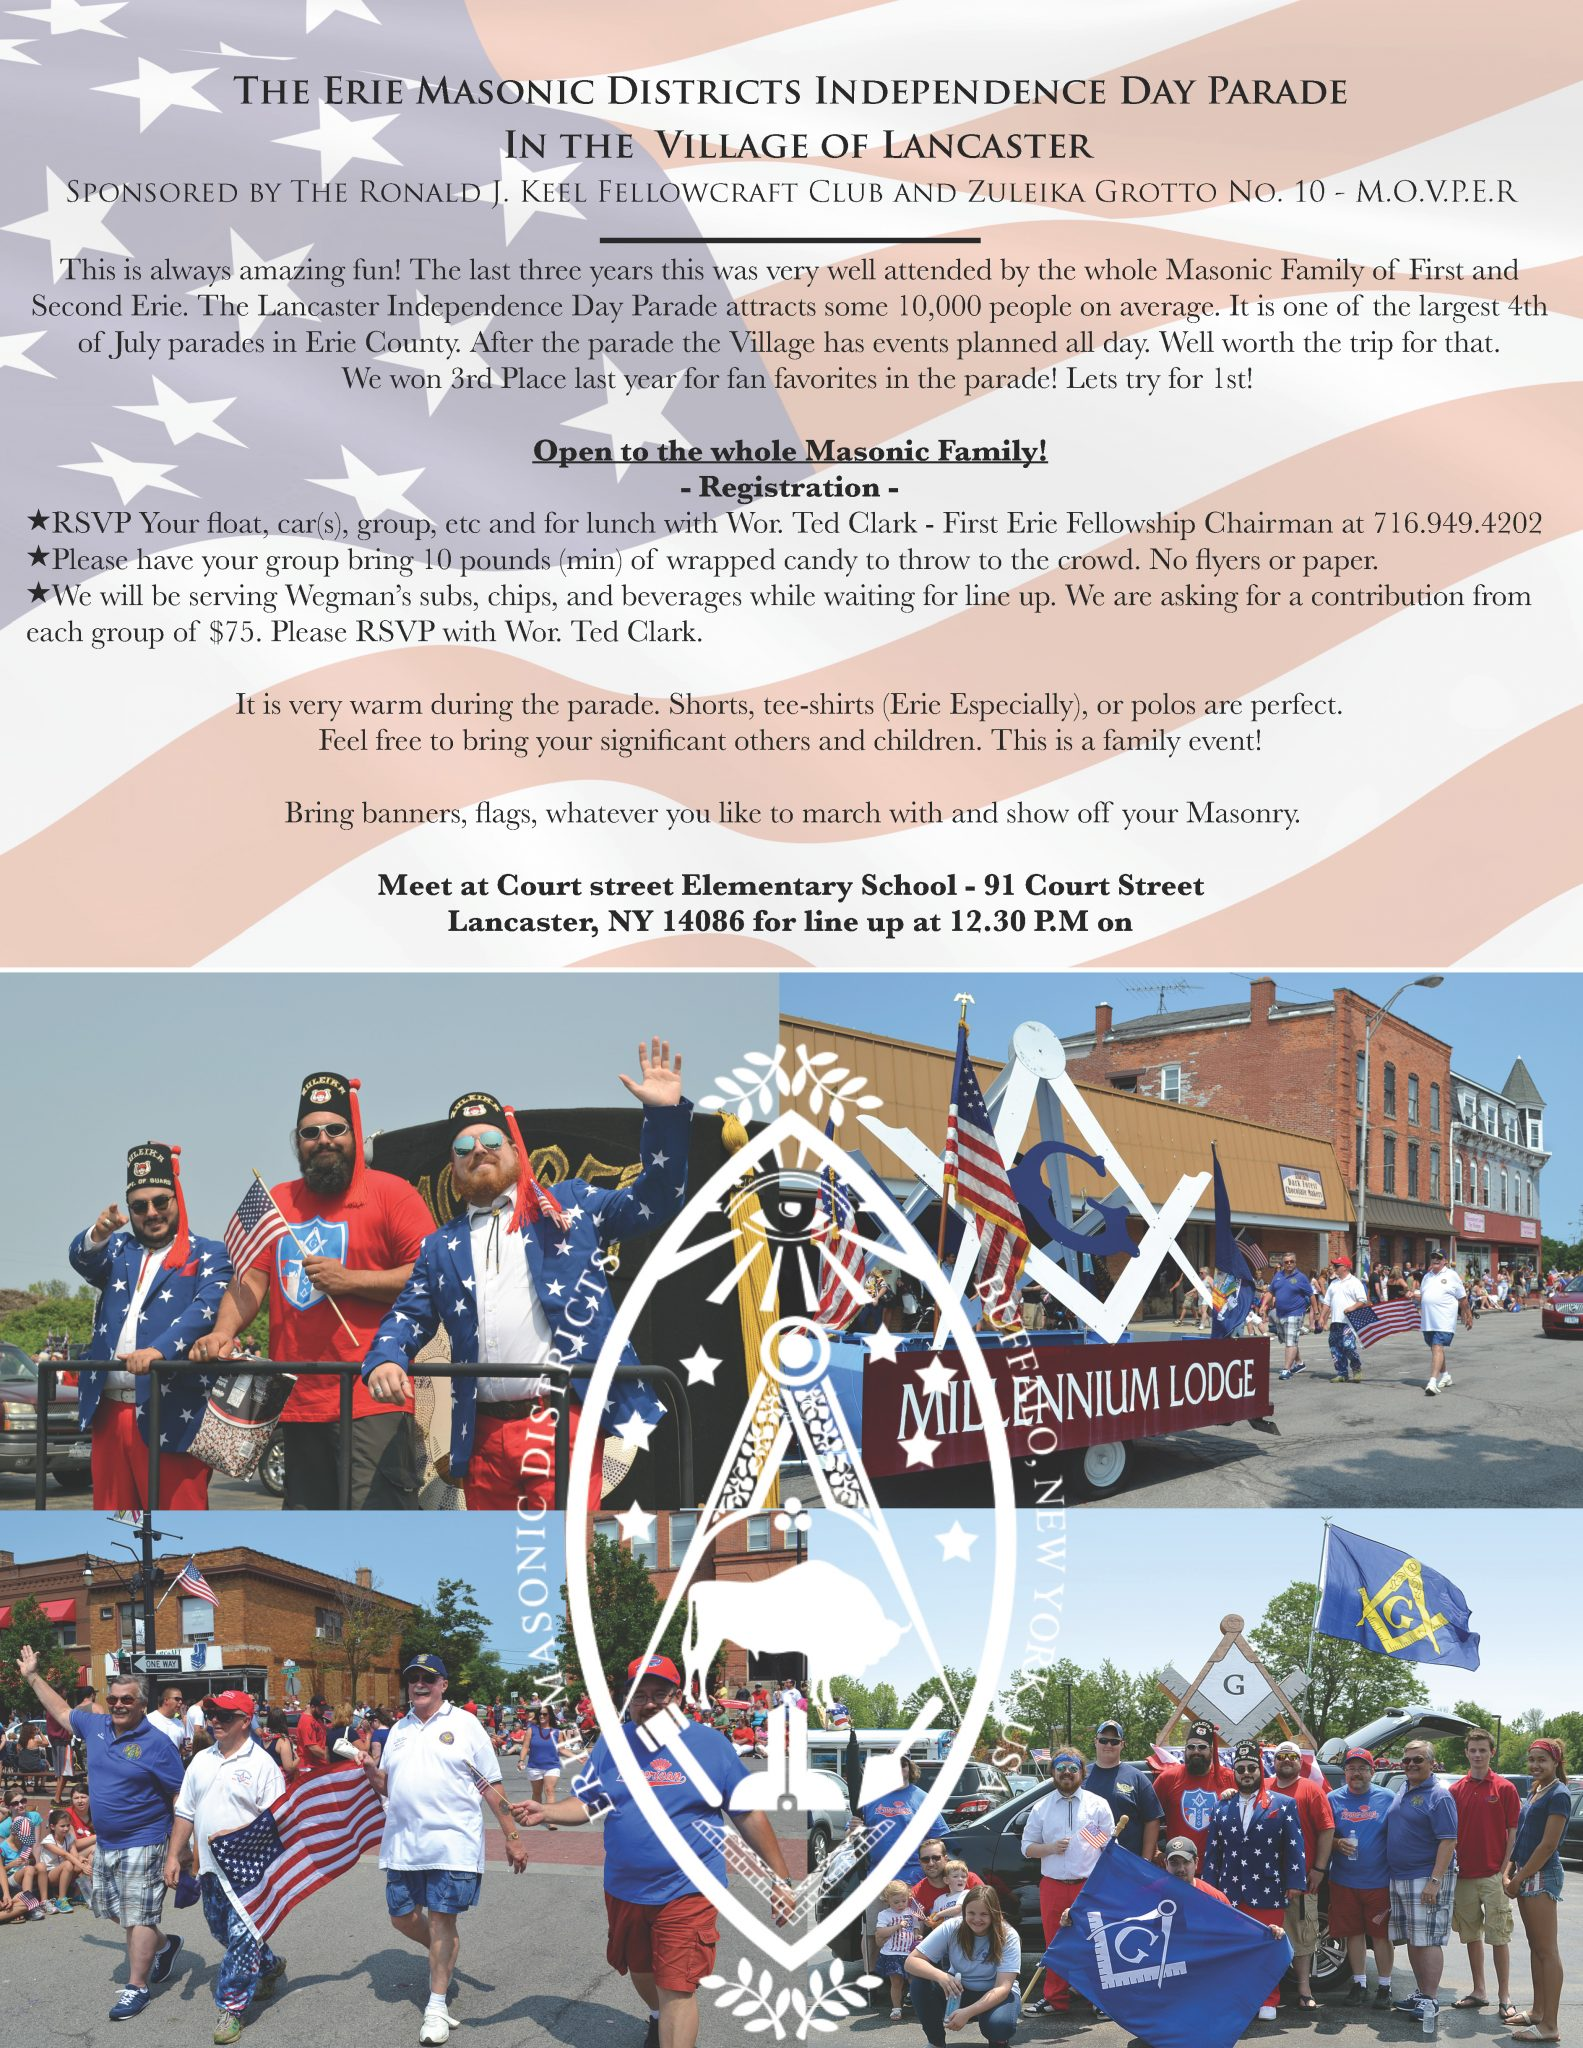 Natale Masonry The 2017 Erie Masonic Districts Independence Day Parade In The